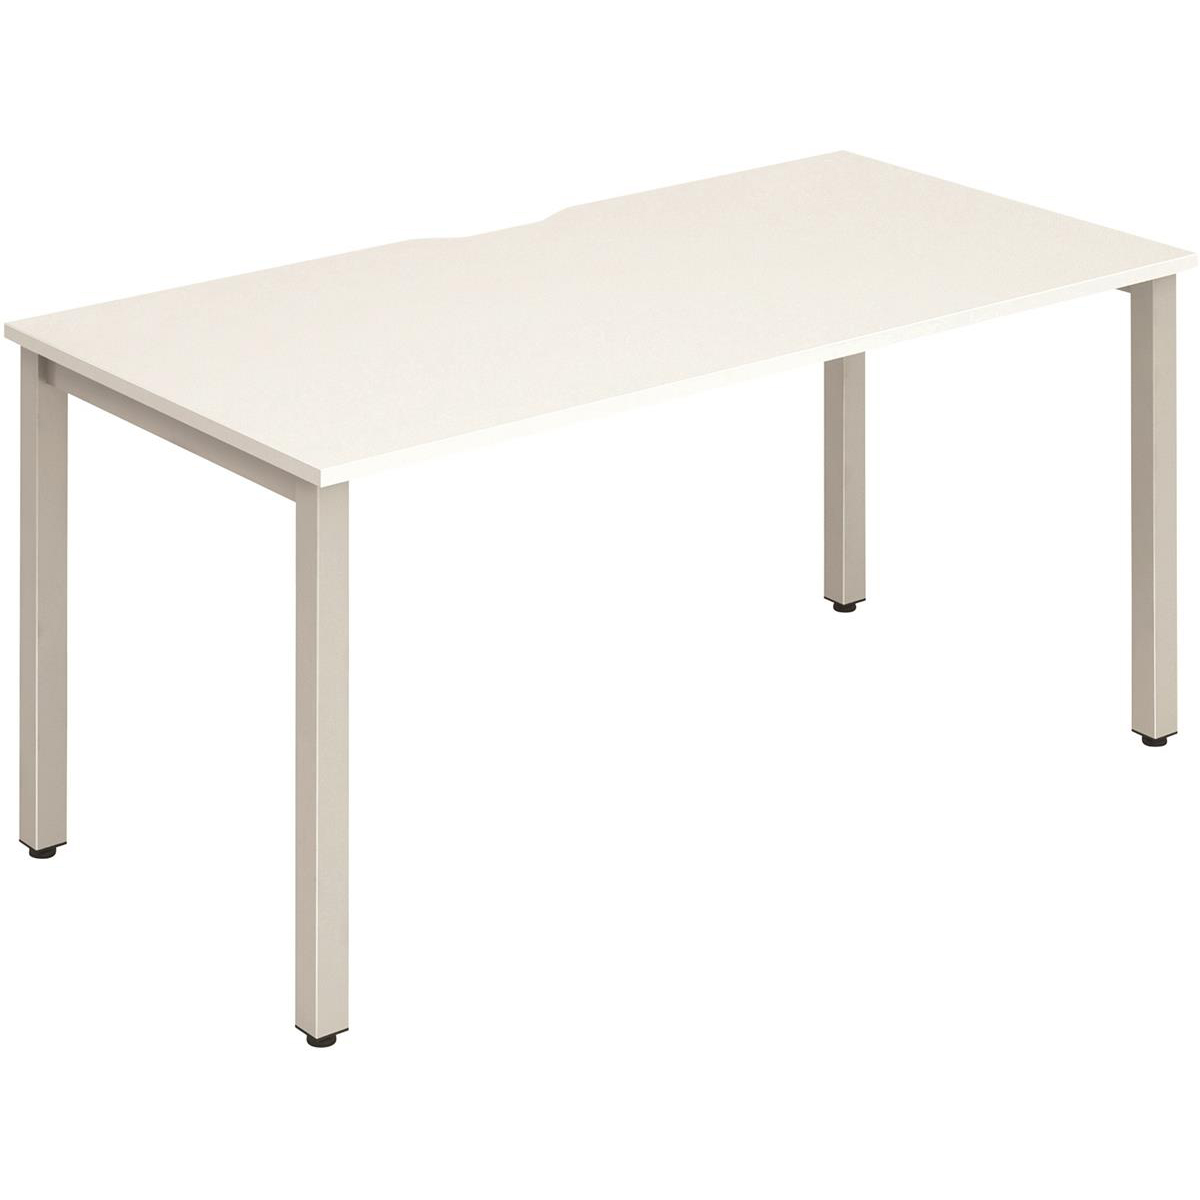 Trexus Bench Desk Individual Silver Leg 1400x800mm White Ref BE135